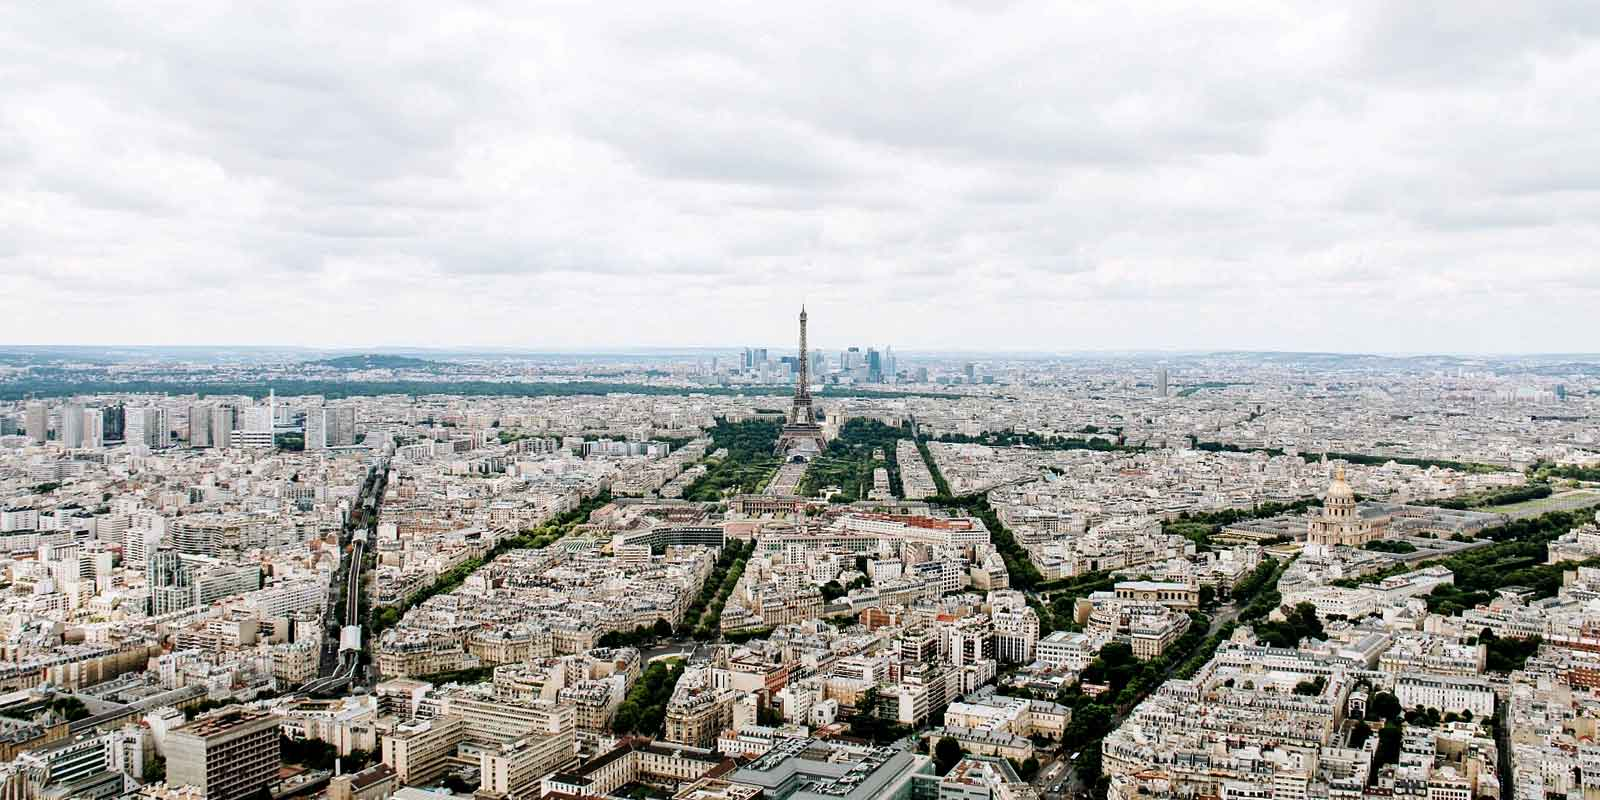 Landscape view of the city of Paris, with the Eiffel Tower in the background.